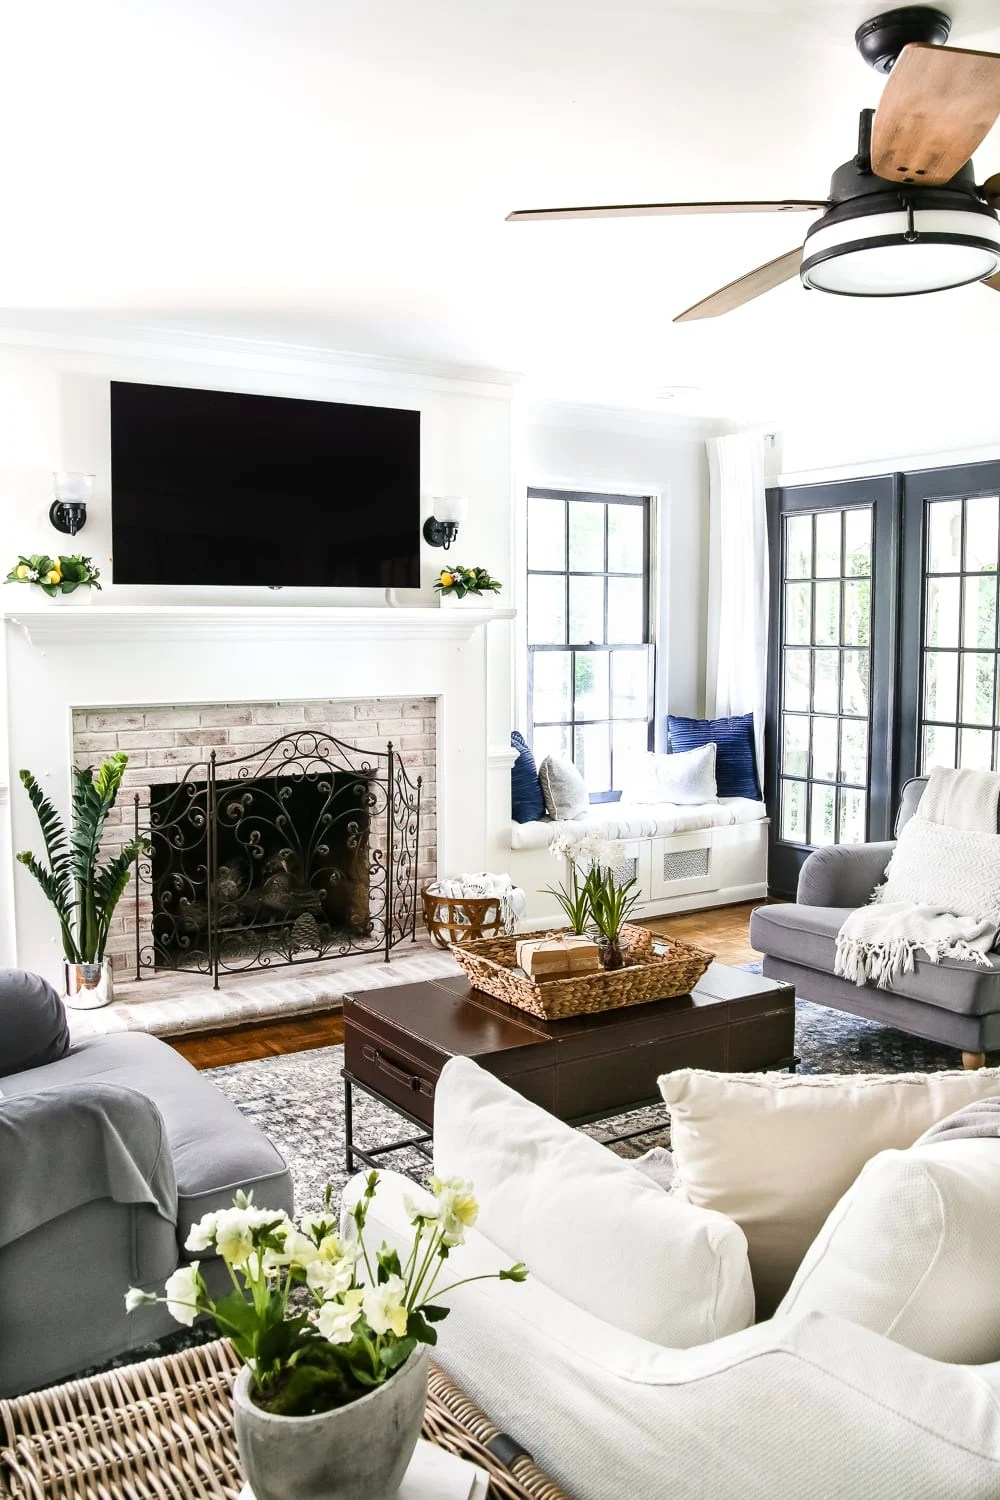 A house tour of a 1960 colonial 1 year after improvements with room makeover before and afters. #housetour #hometour #diyhome #homeimprovement #diy #diyblogger #budgetdecorating #beforeafter